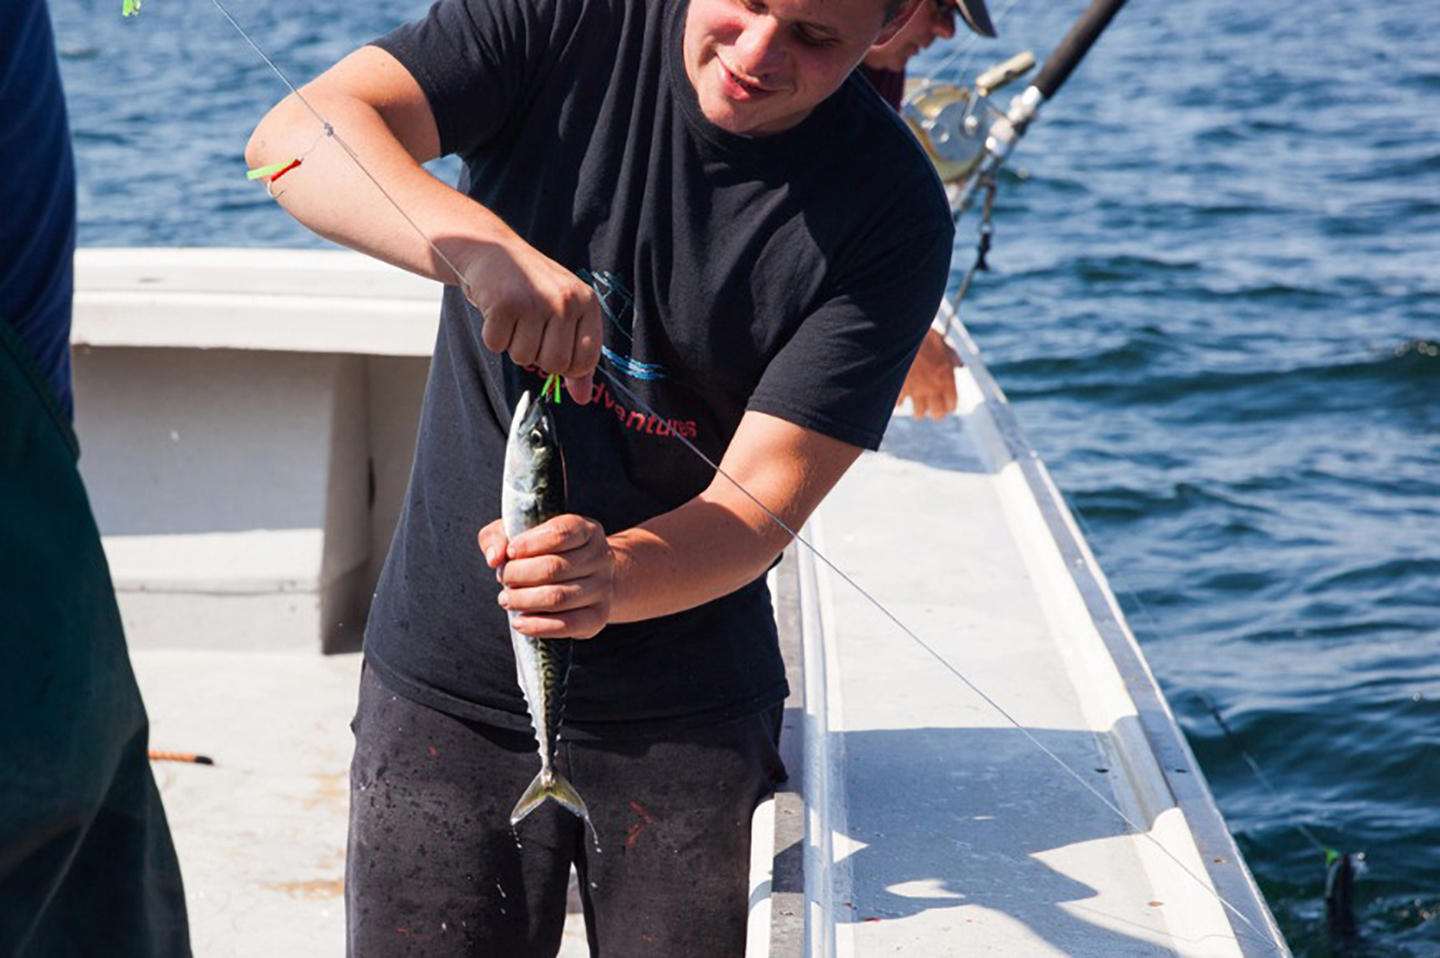 An angler hooking live mackerel onto a fishing line to catch Bluefin Tuna